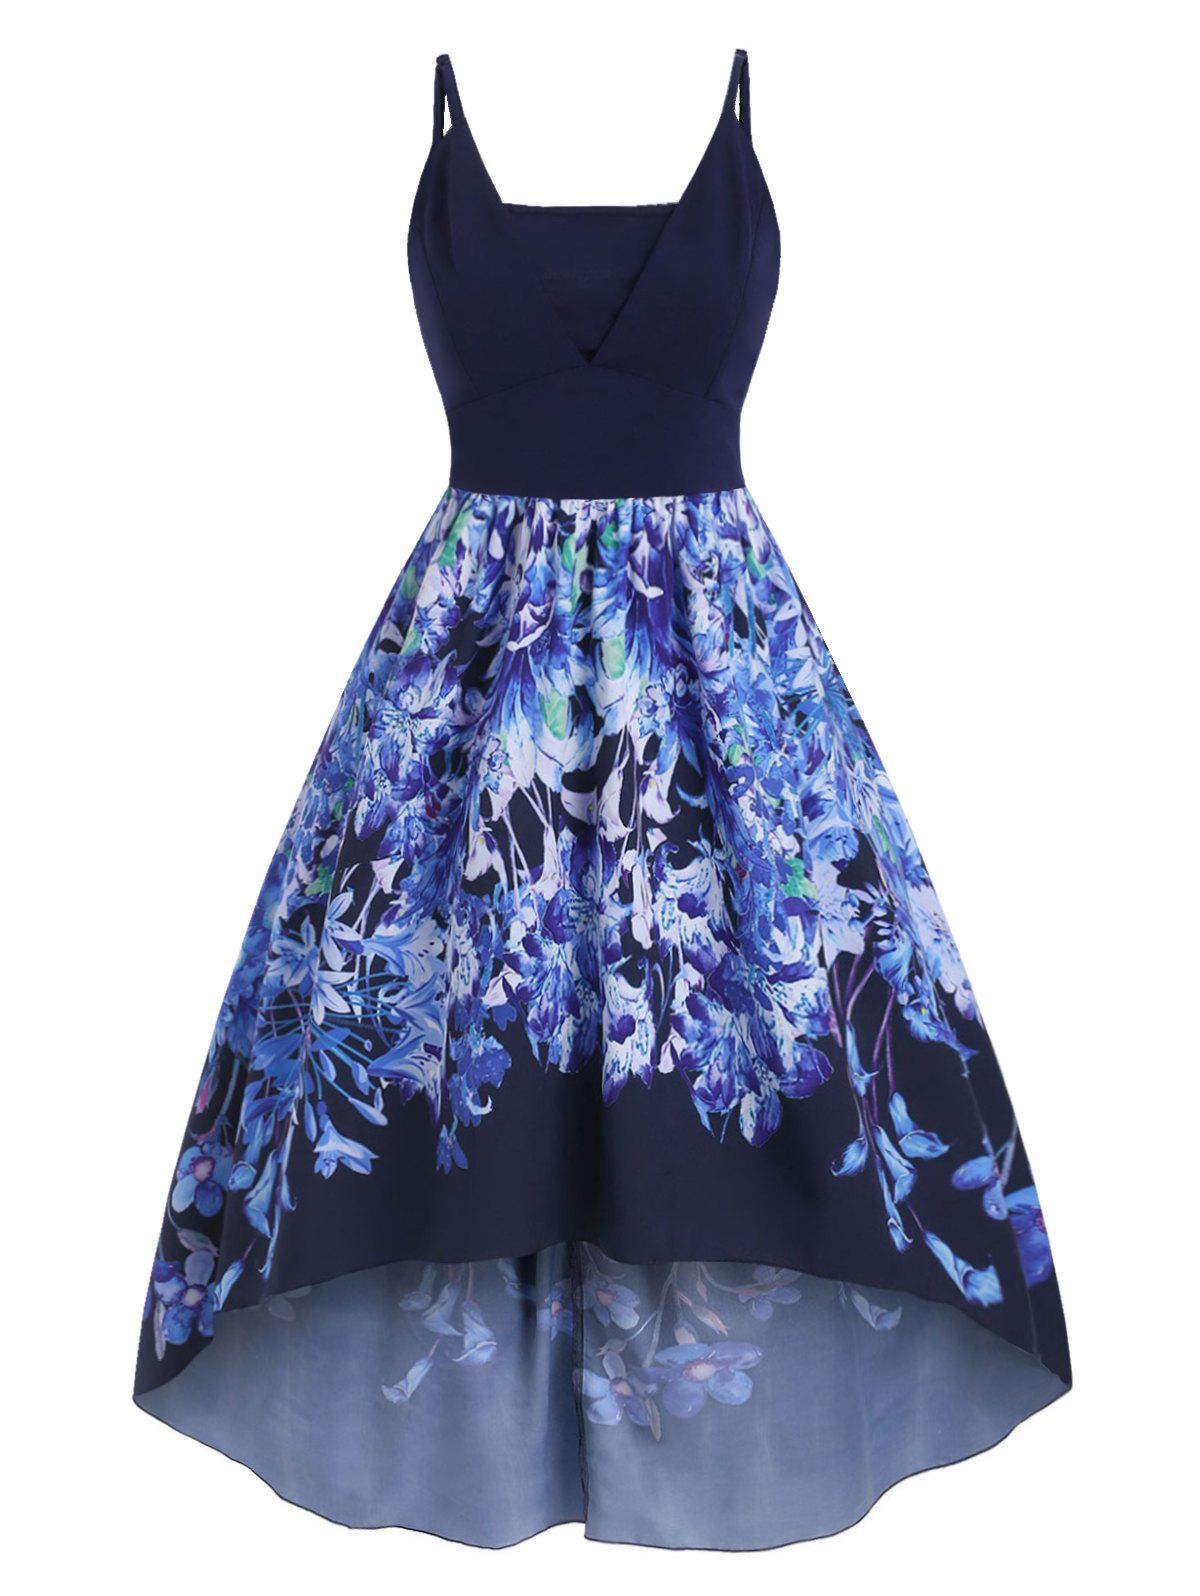 Plus Size Floral Print High Low Party Dress - BLUE L